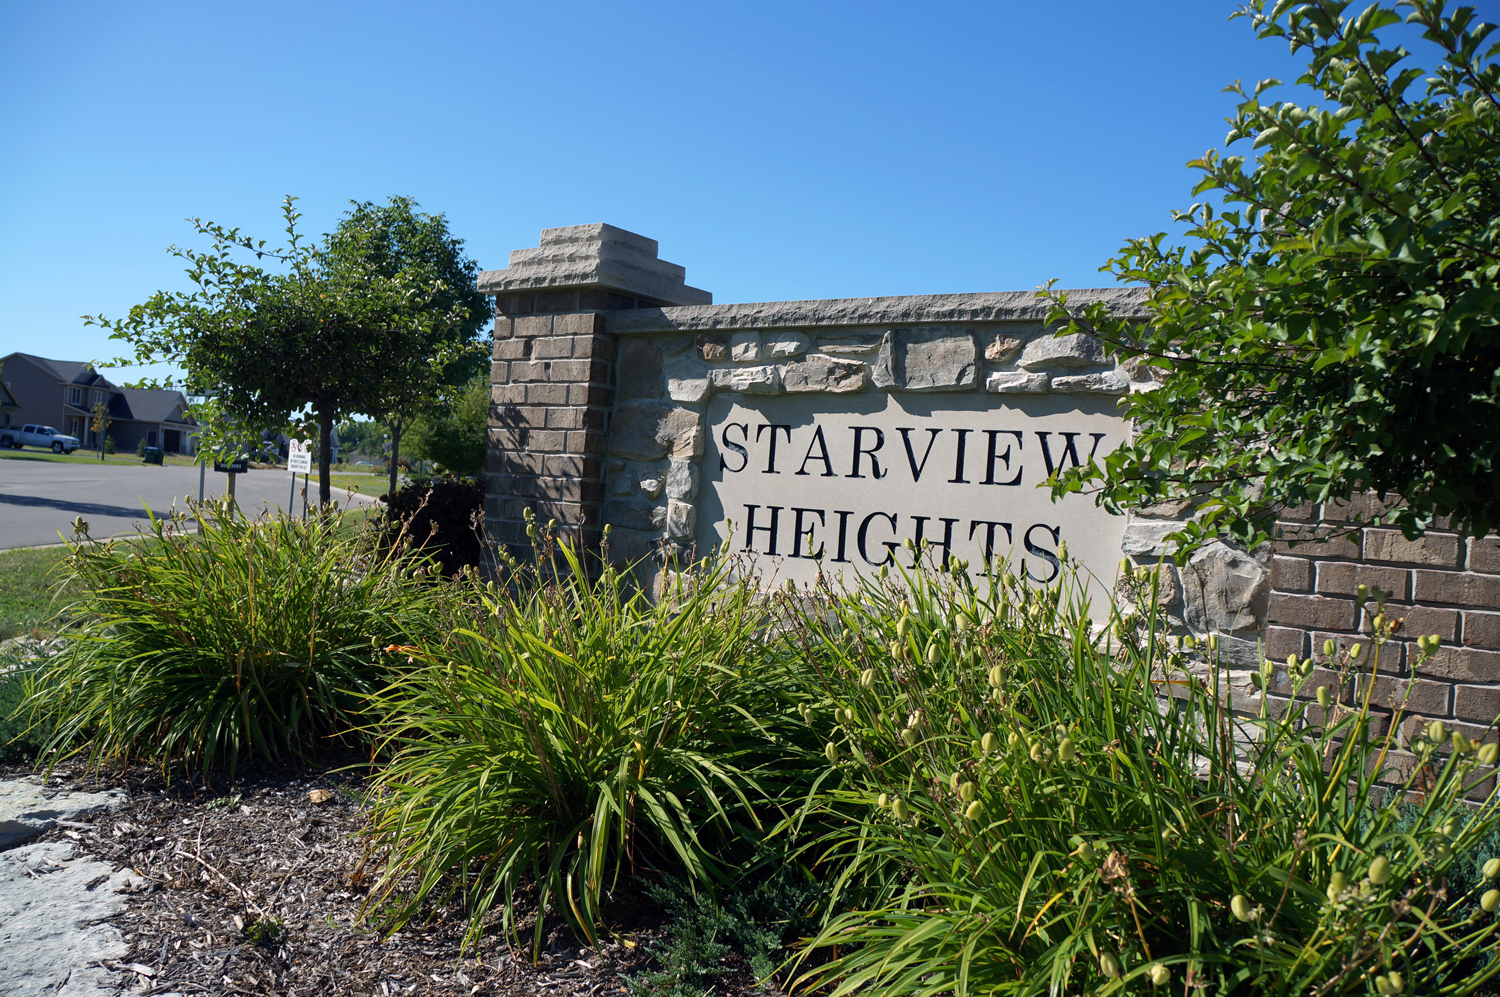 STARVIEW HEIGHTS – Lots For Sale